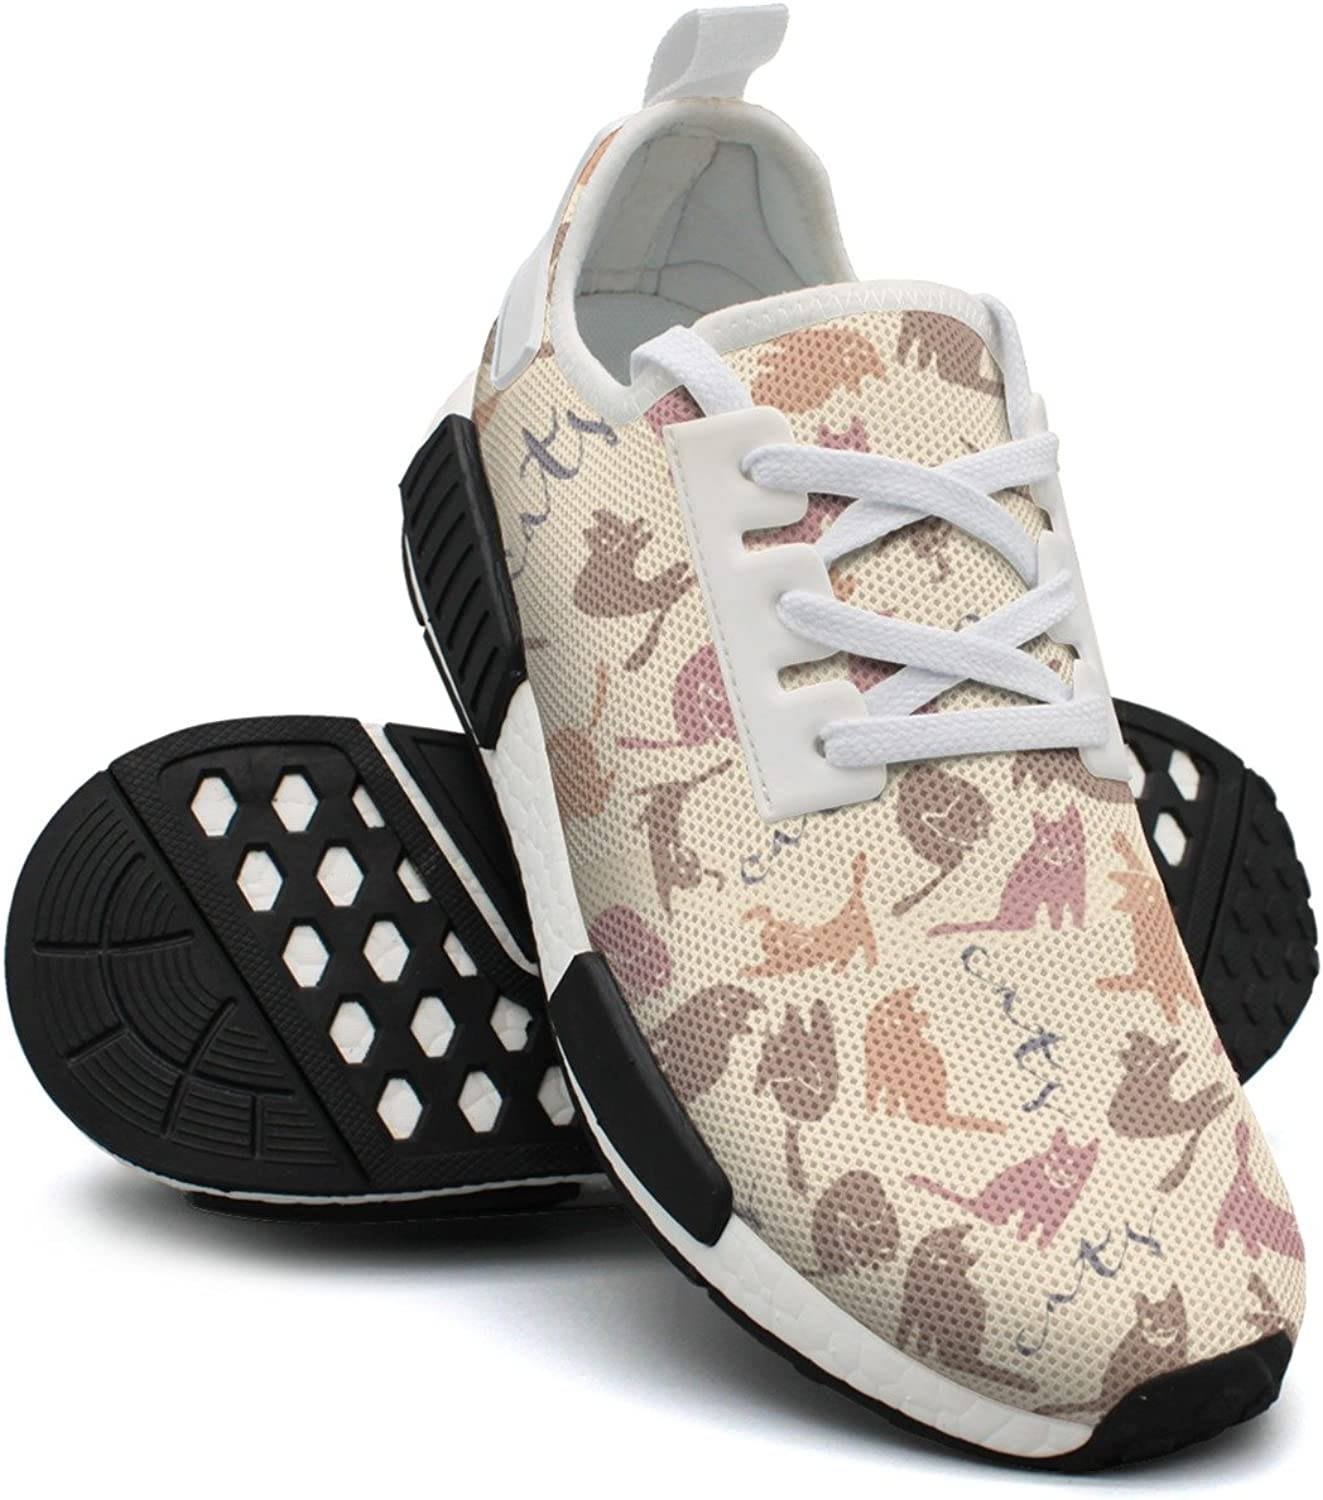 Ktyyuwwww Pretty Women colorful Printing Funny Cats Kitten Jogger Running shoes